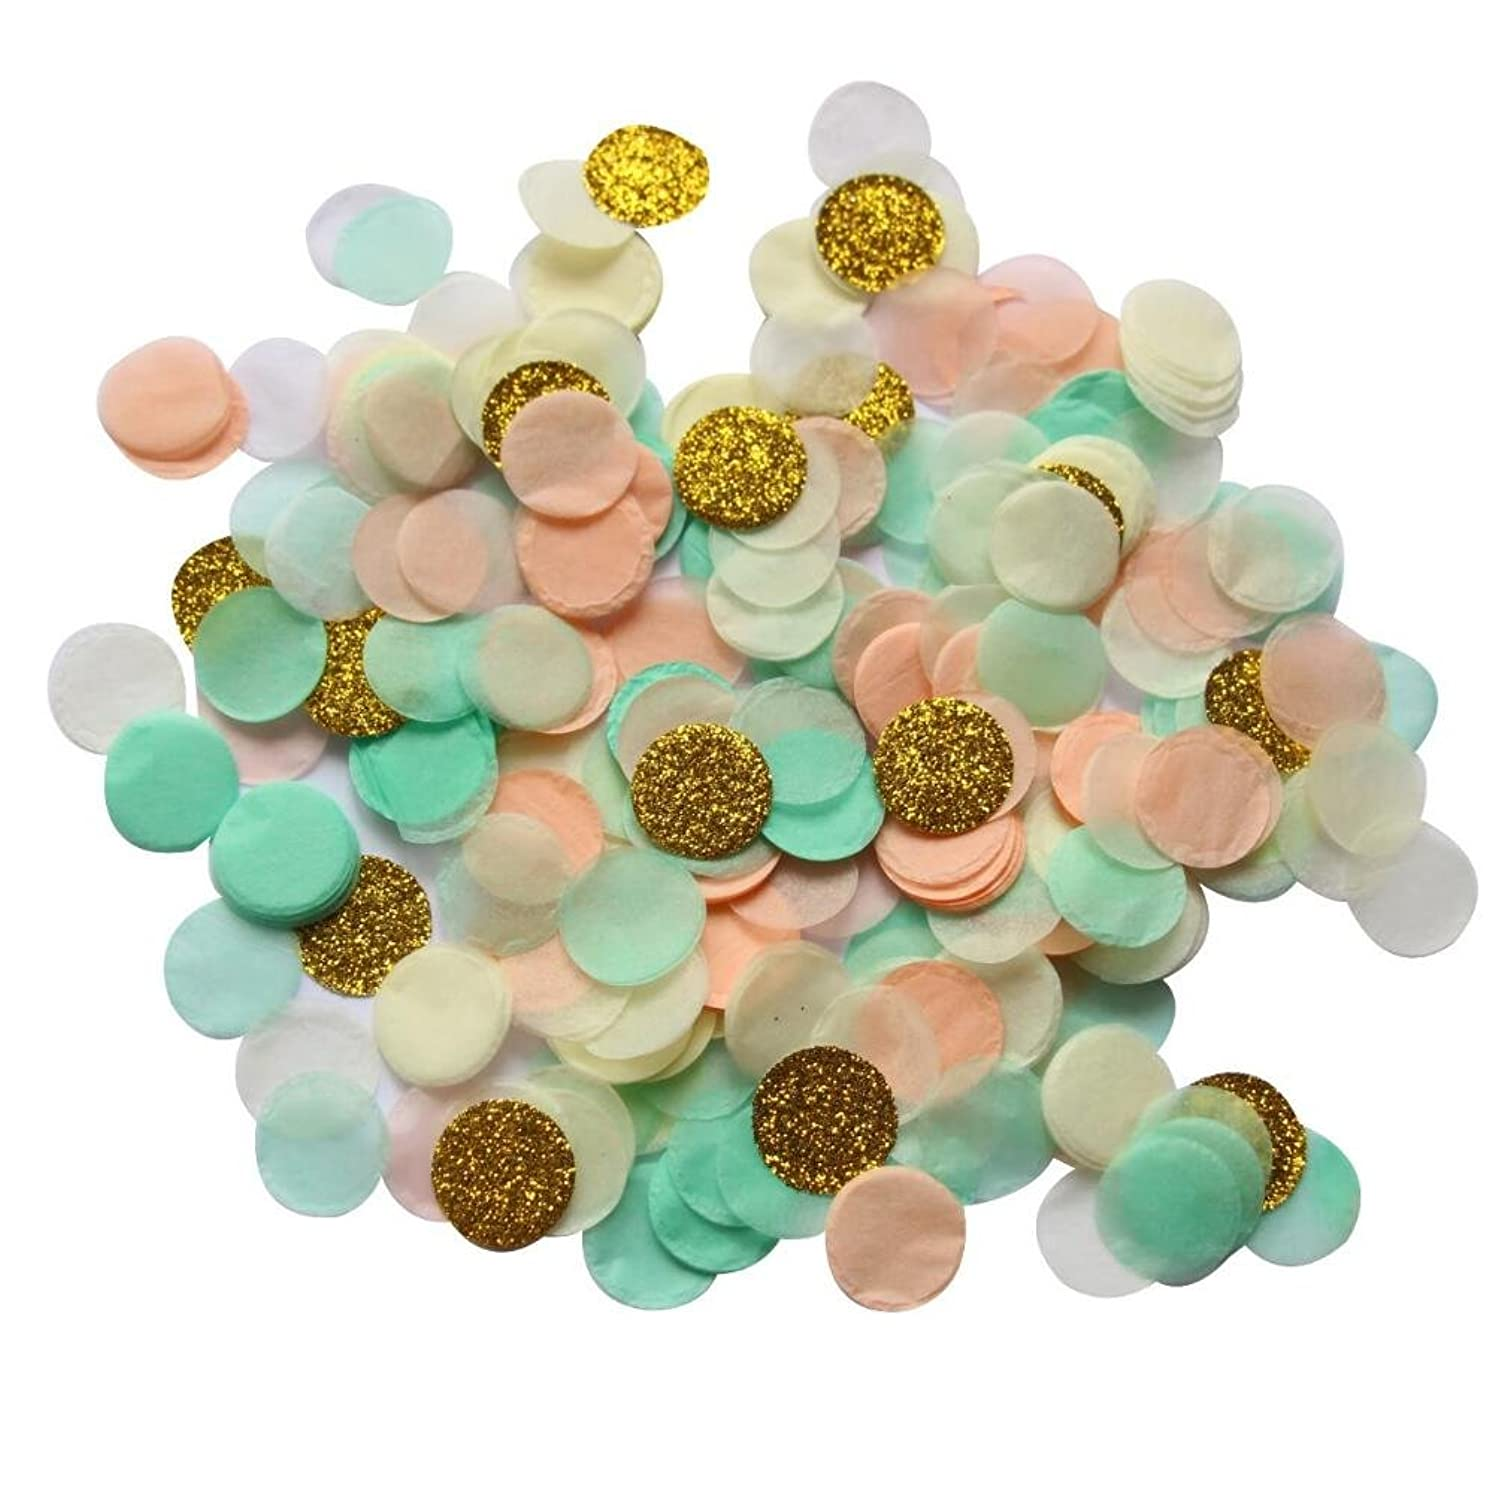 Mybbshower 1 Inch Mint Peach Gold Glitter Throwing Wedding Confetti Baby Bridal Shower Table Bachelorette Engagement Party Decoration Pack of 4000 Pieces